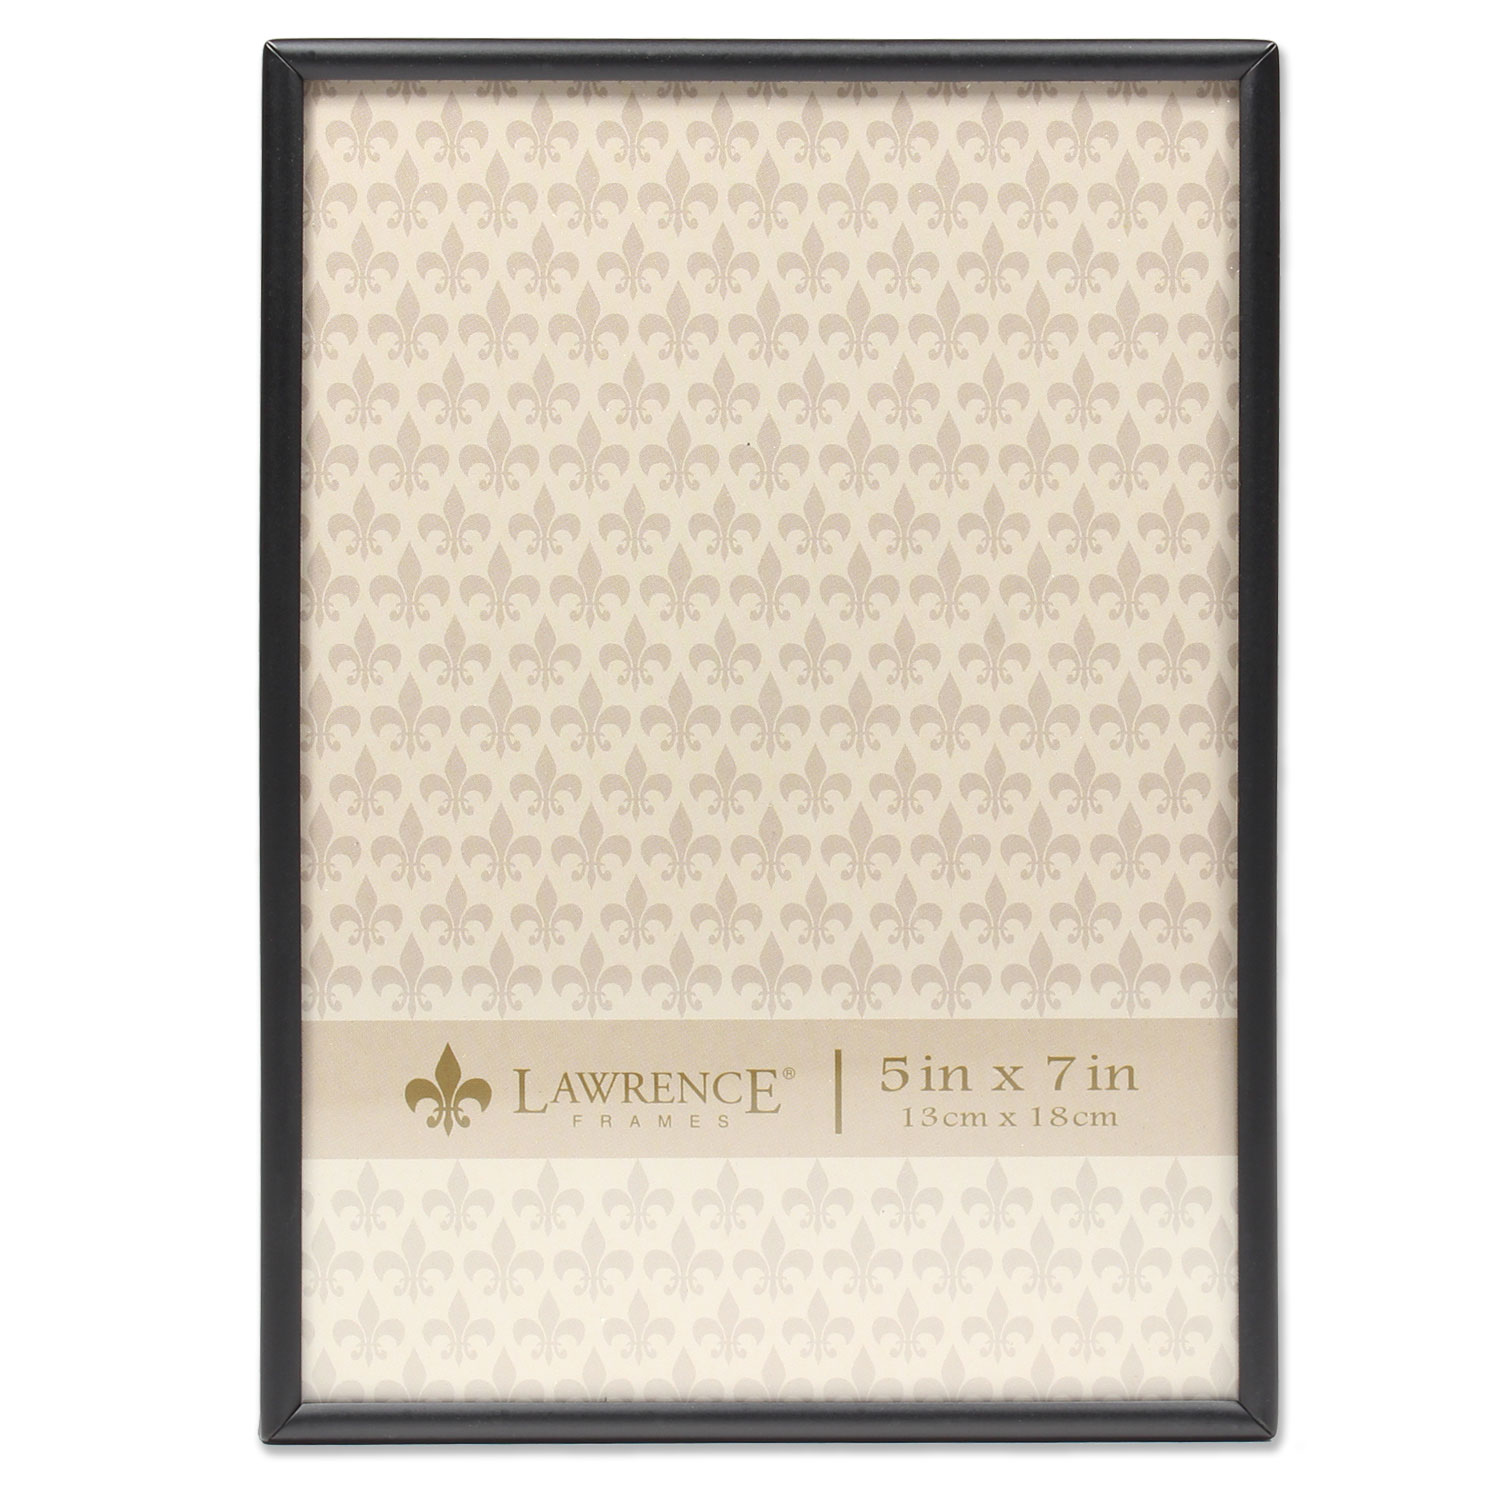 5x7 Simply Black Picture Frame by Lawrence Frames